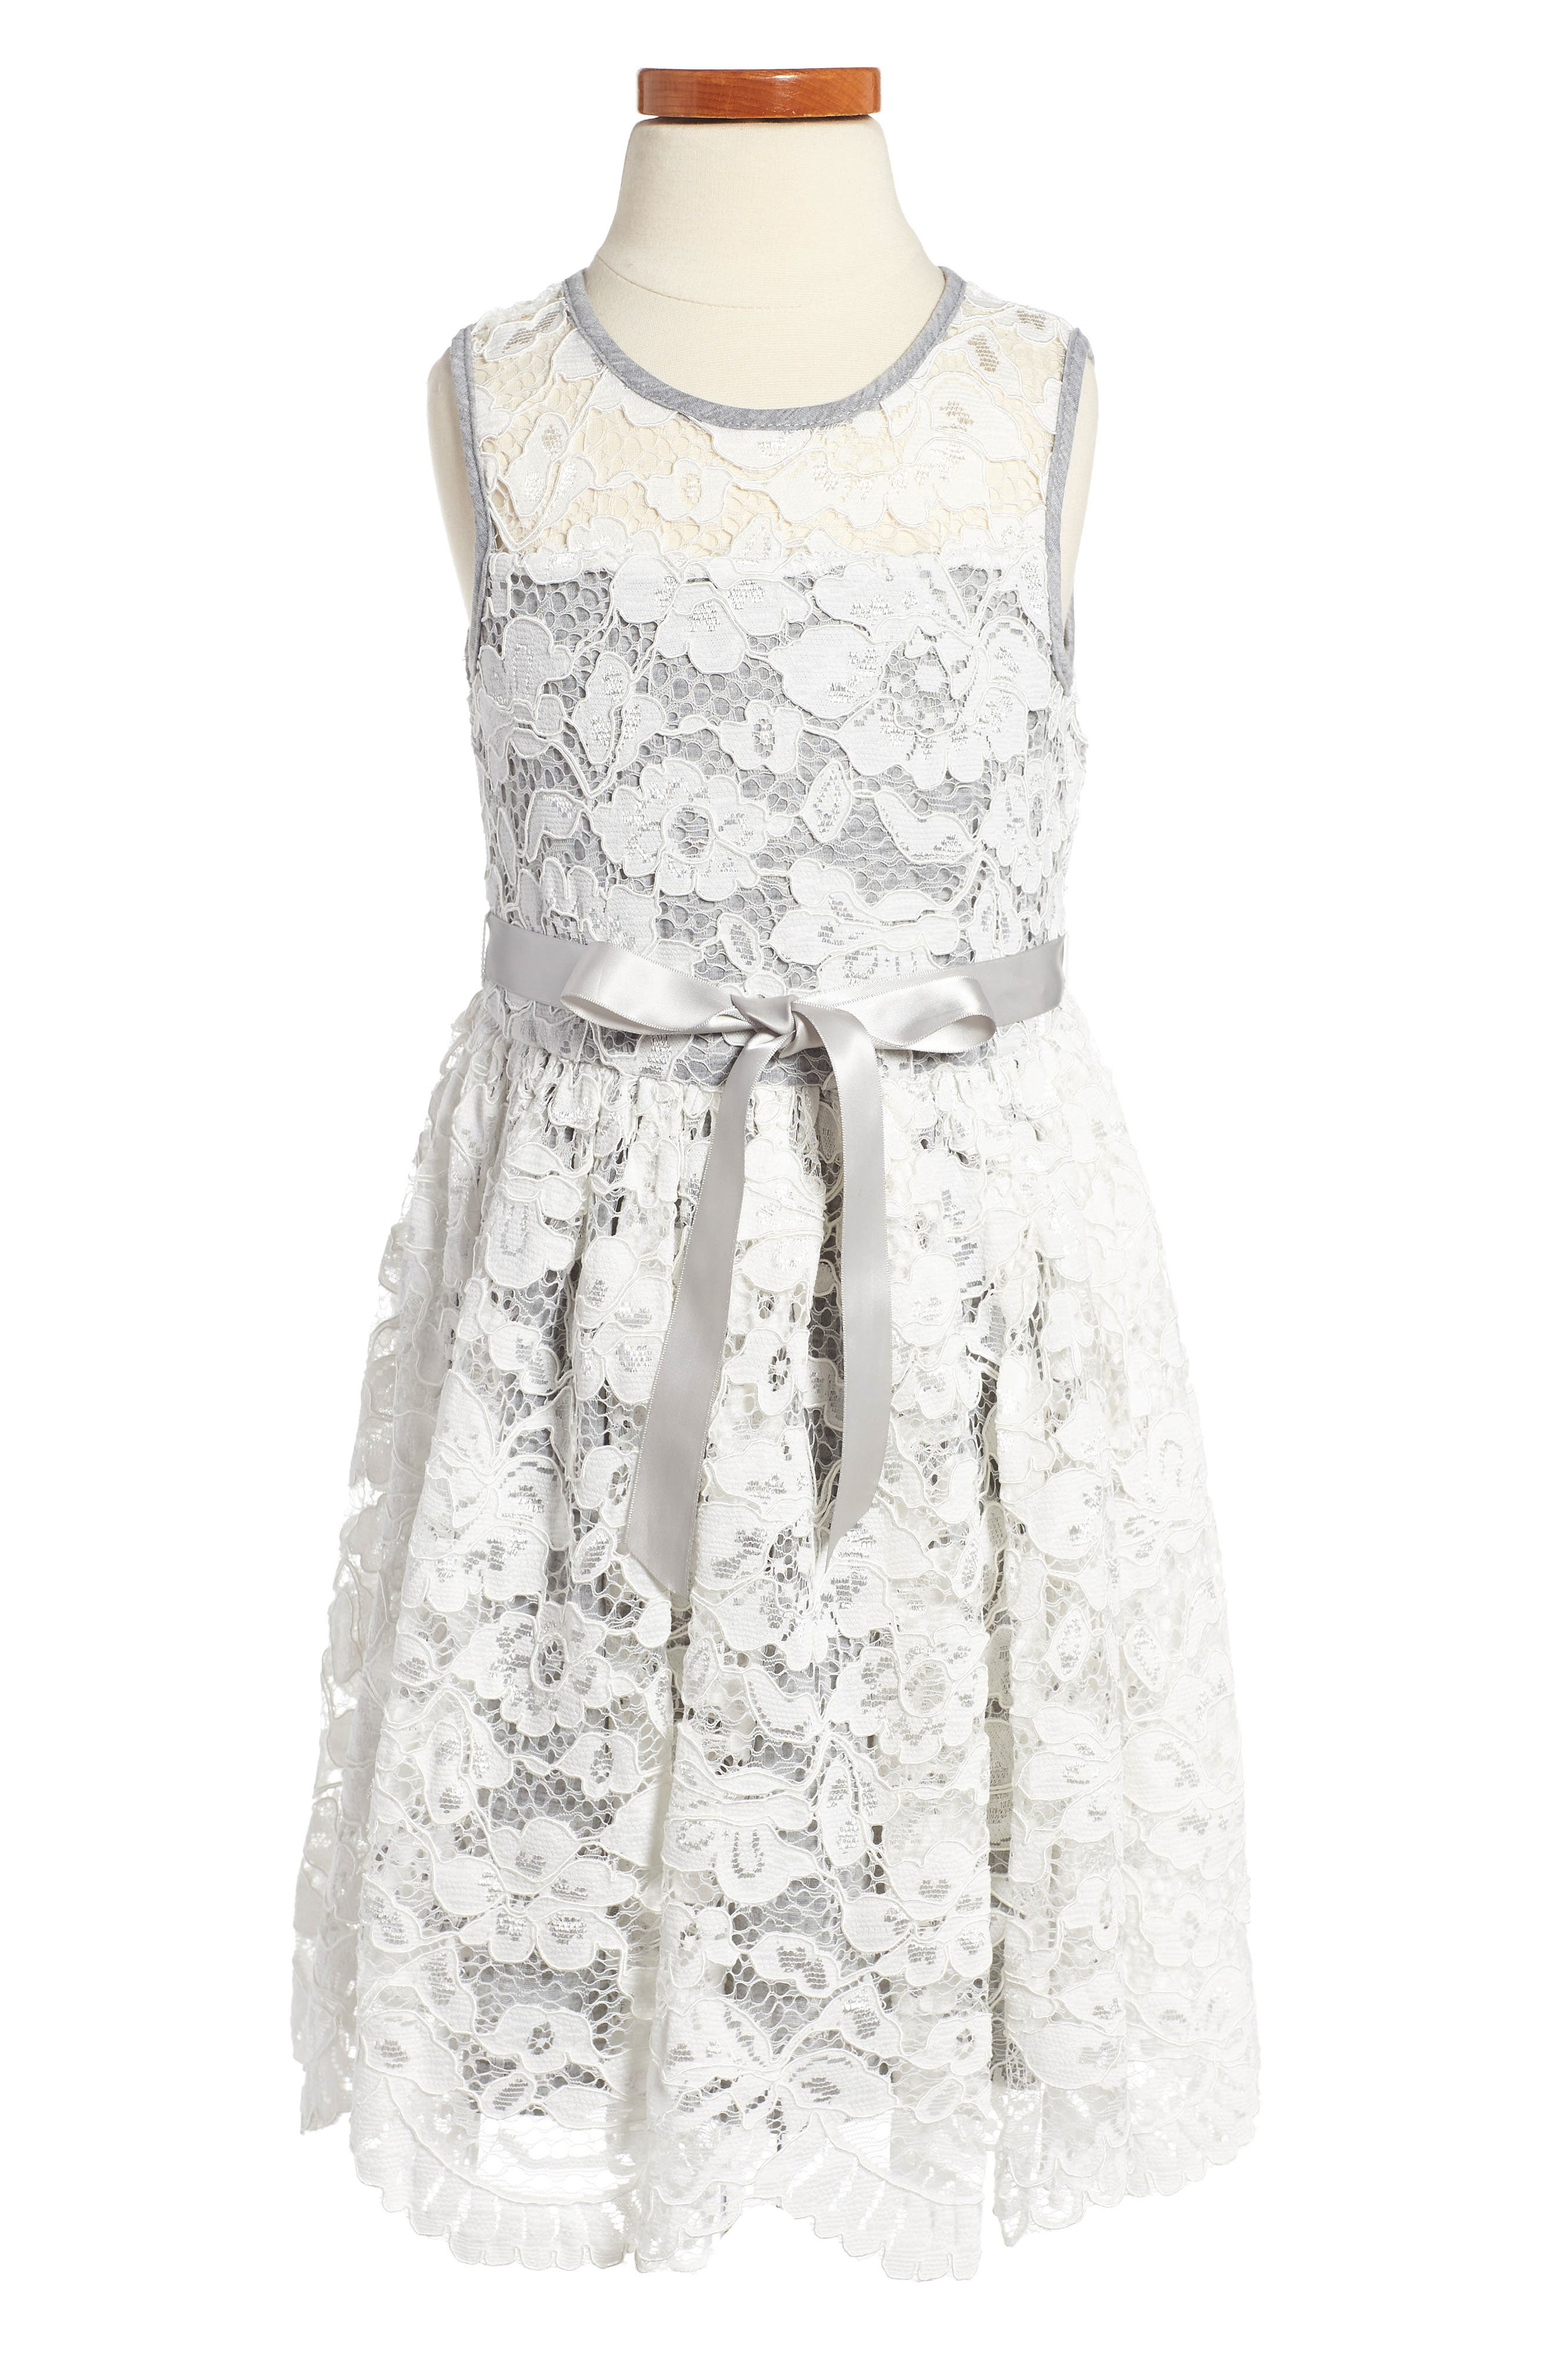 Scalloped Floral Lace Dress,                         Main,                         color, Ivory/ Grey